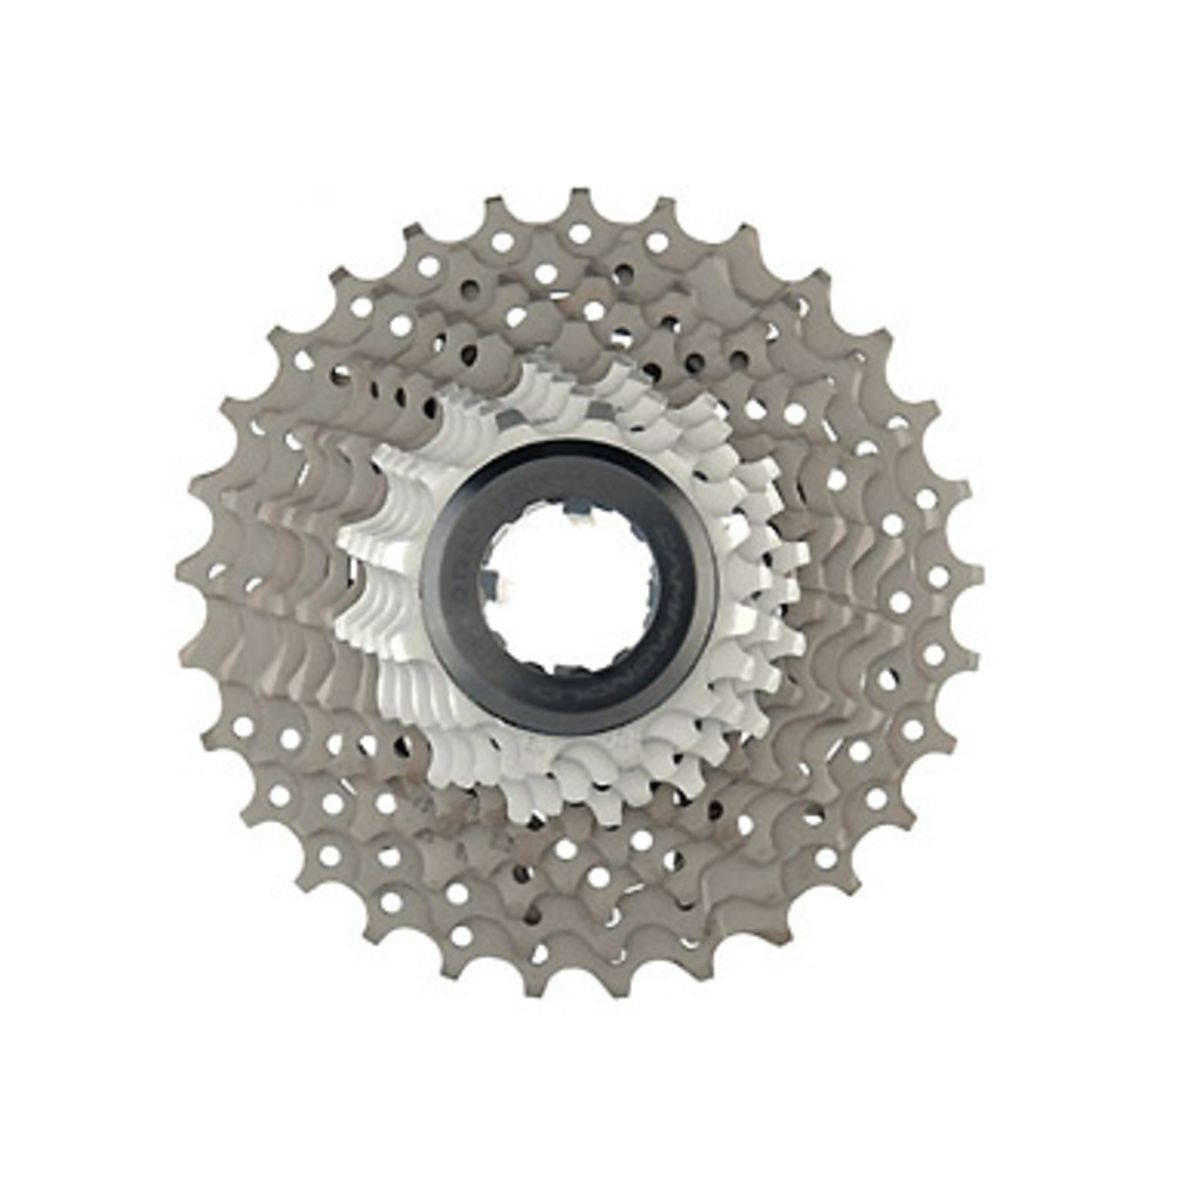 Super Record 11-speed cassette